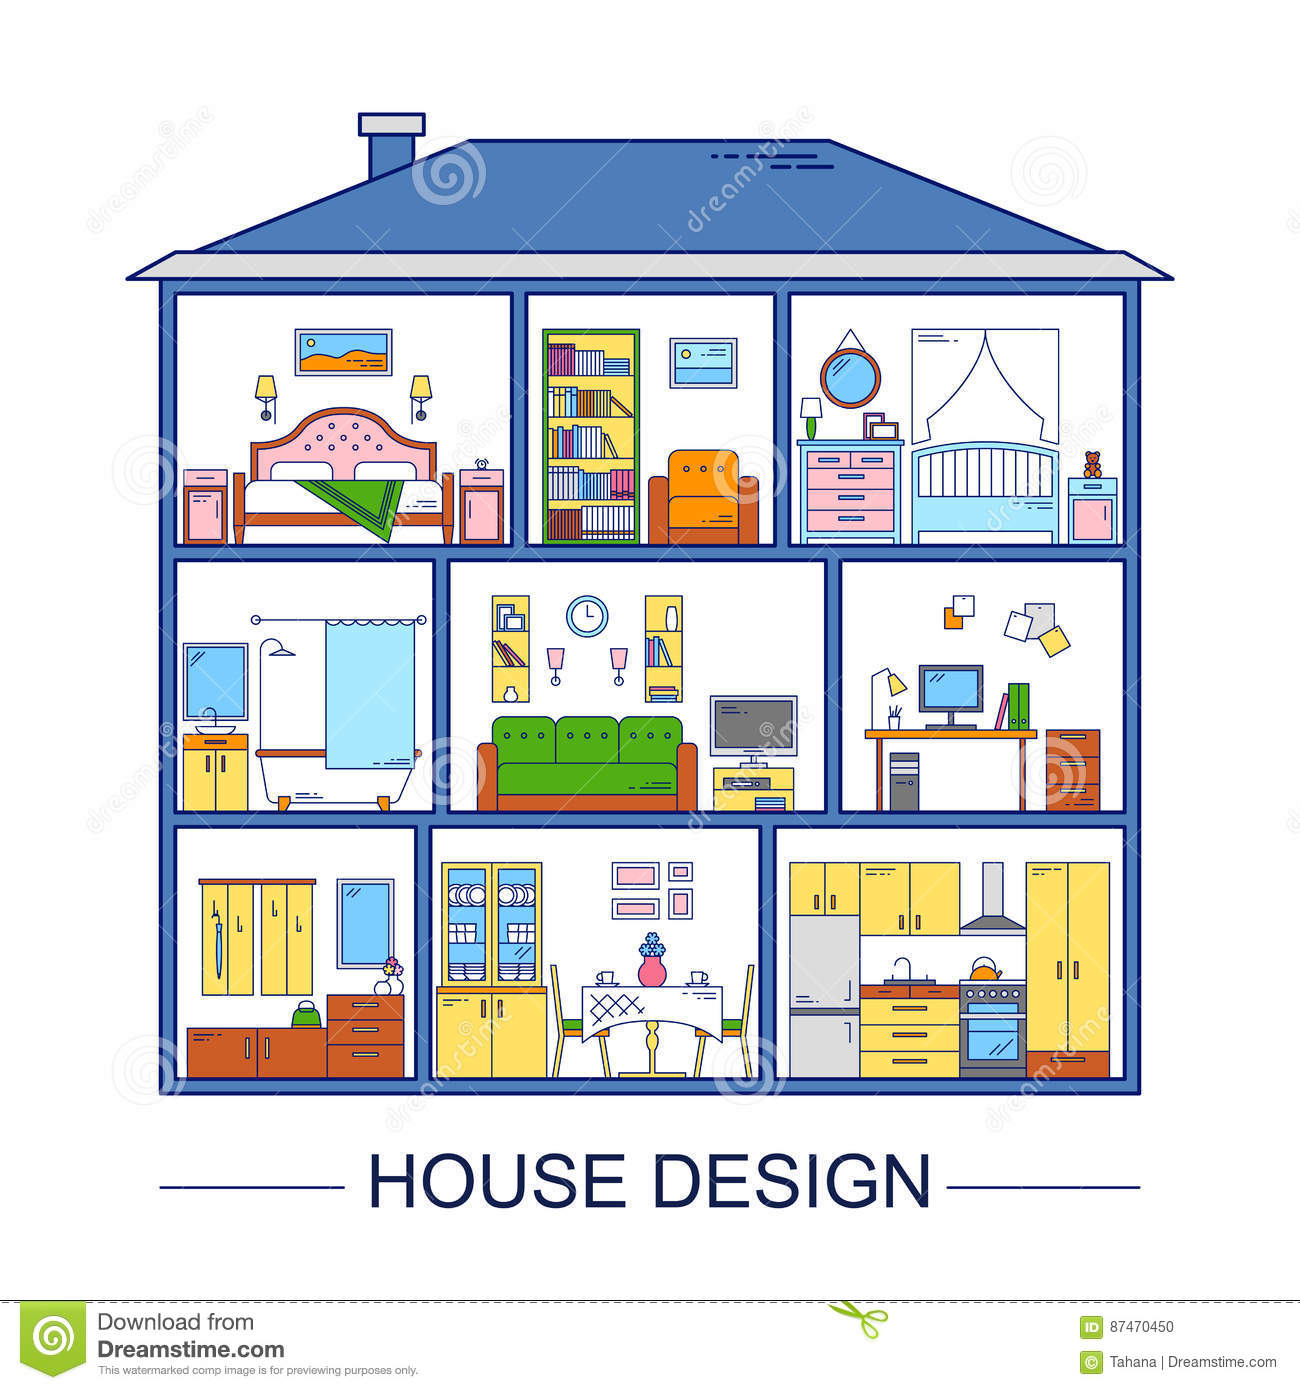 Bathroon cartoons illustrations vector stock images 7 pictures to download from - Home design elements ...